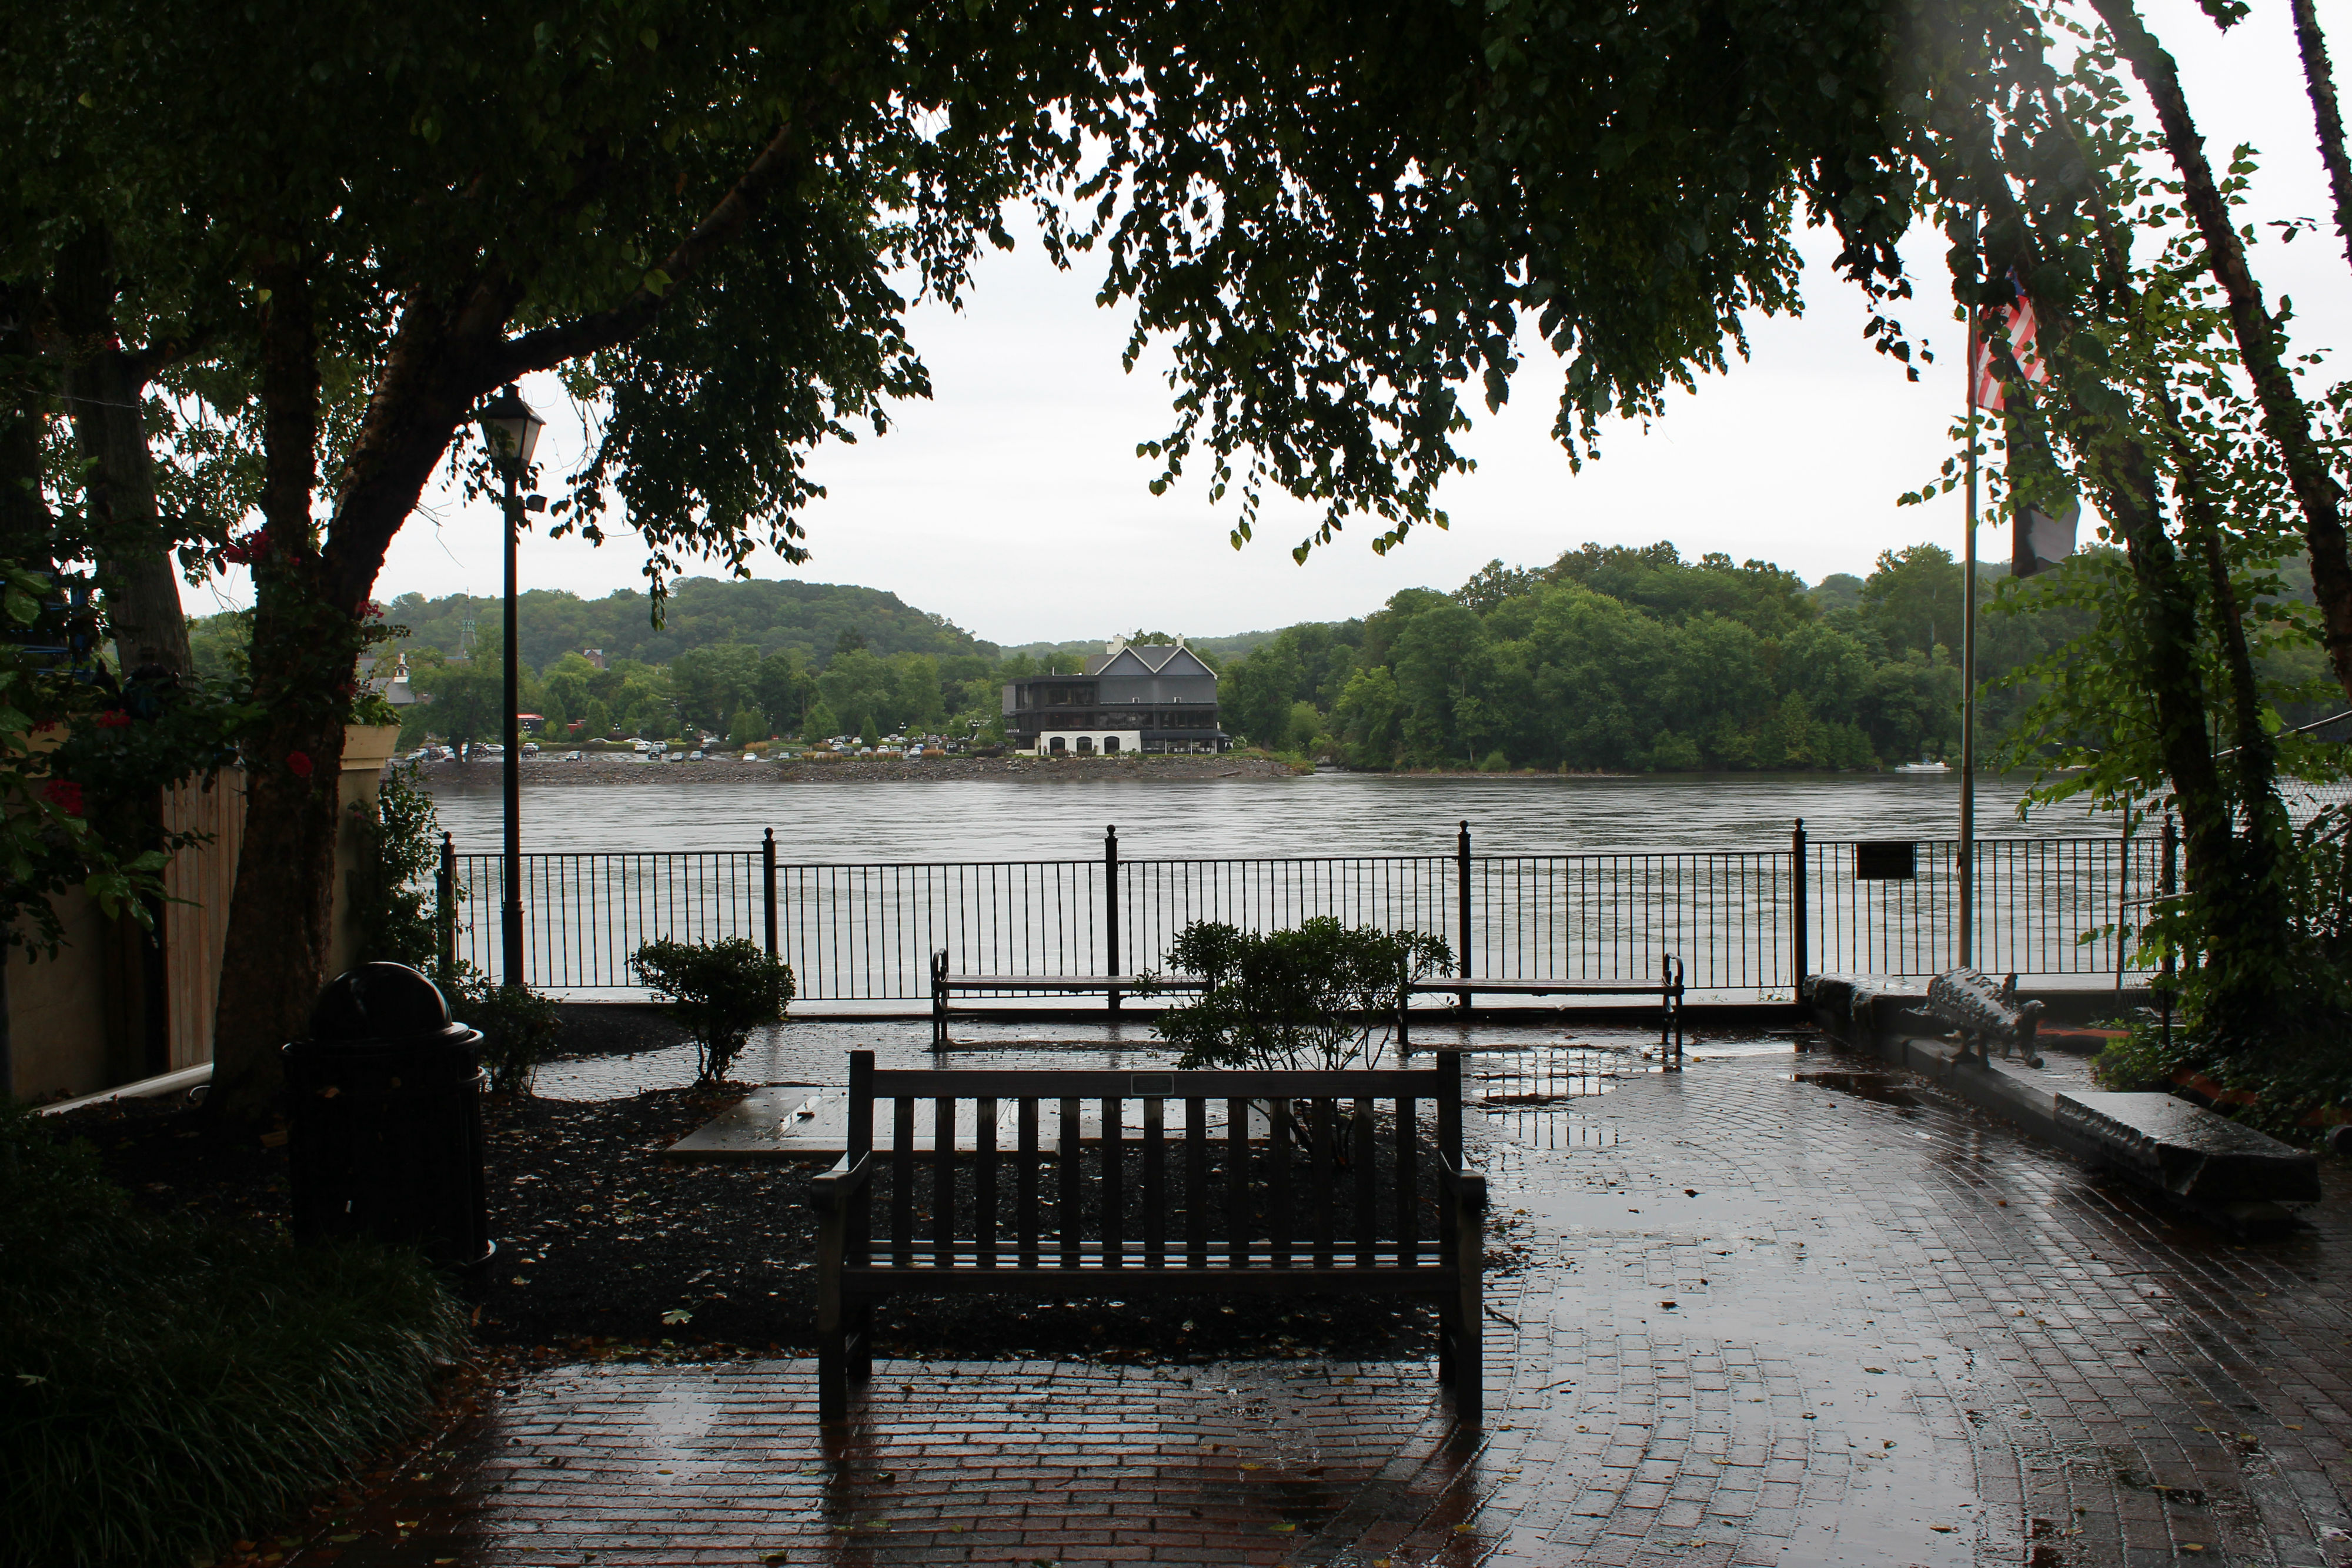 You can walk across the Delaware River on a bridge to Lambertville, New Jersey. The Delaware River serves as the state line. There are places to stay and things to do in Lambertville, too, so definitely check it out!{&nbsp;}(Image: Julie Gallagher)<p></p>